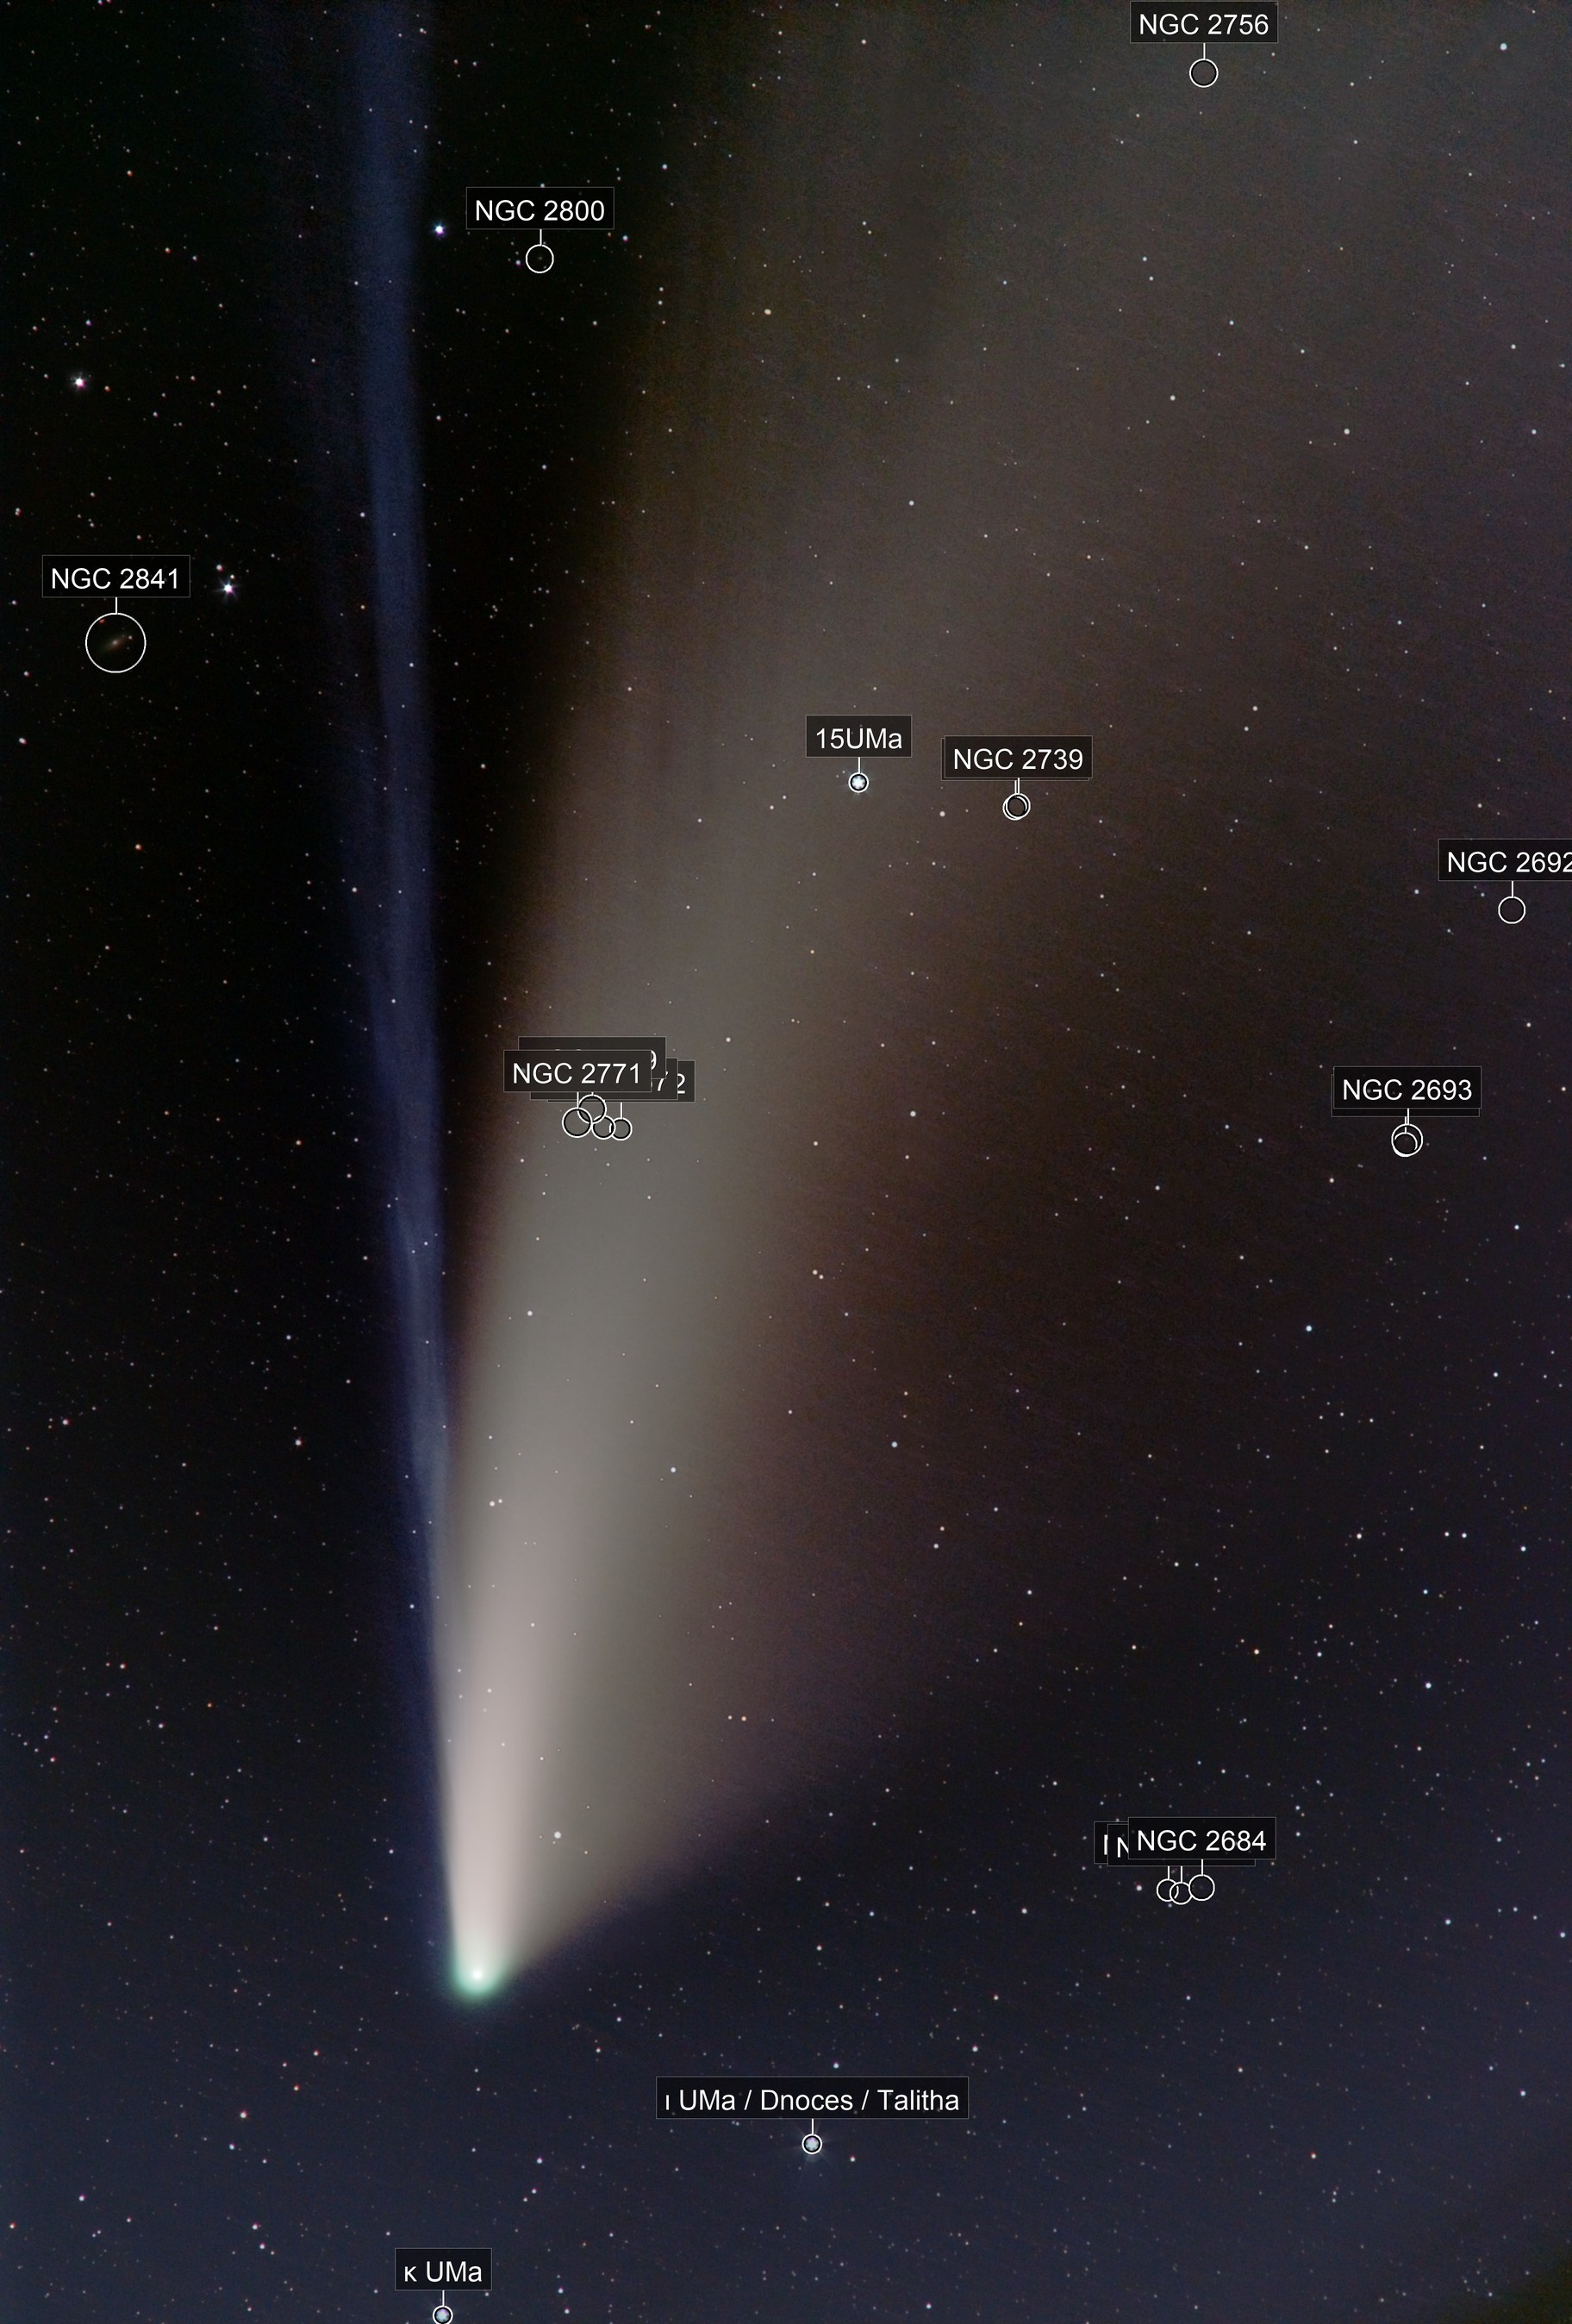 Comet C/2020 F3 NEOWISE from Flagstaff, Arizona July 18